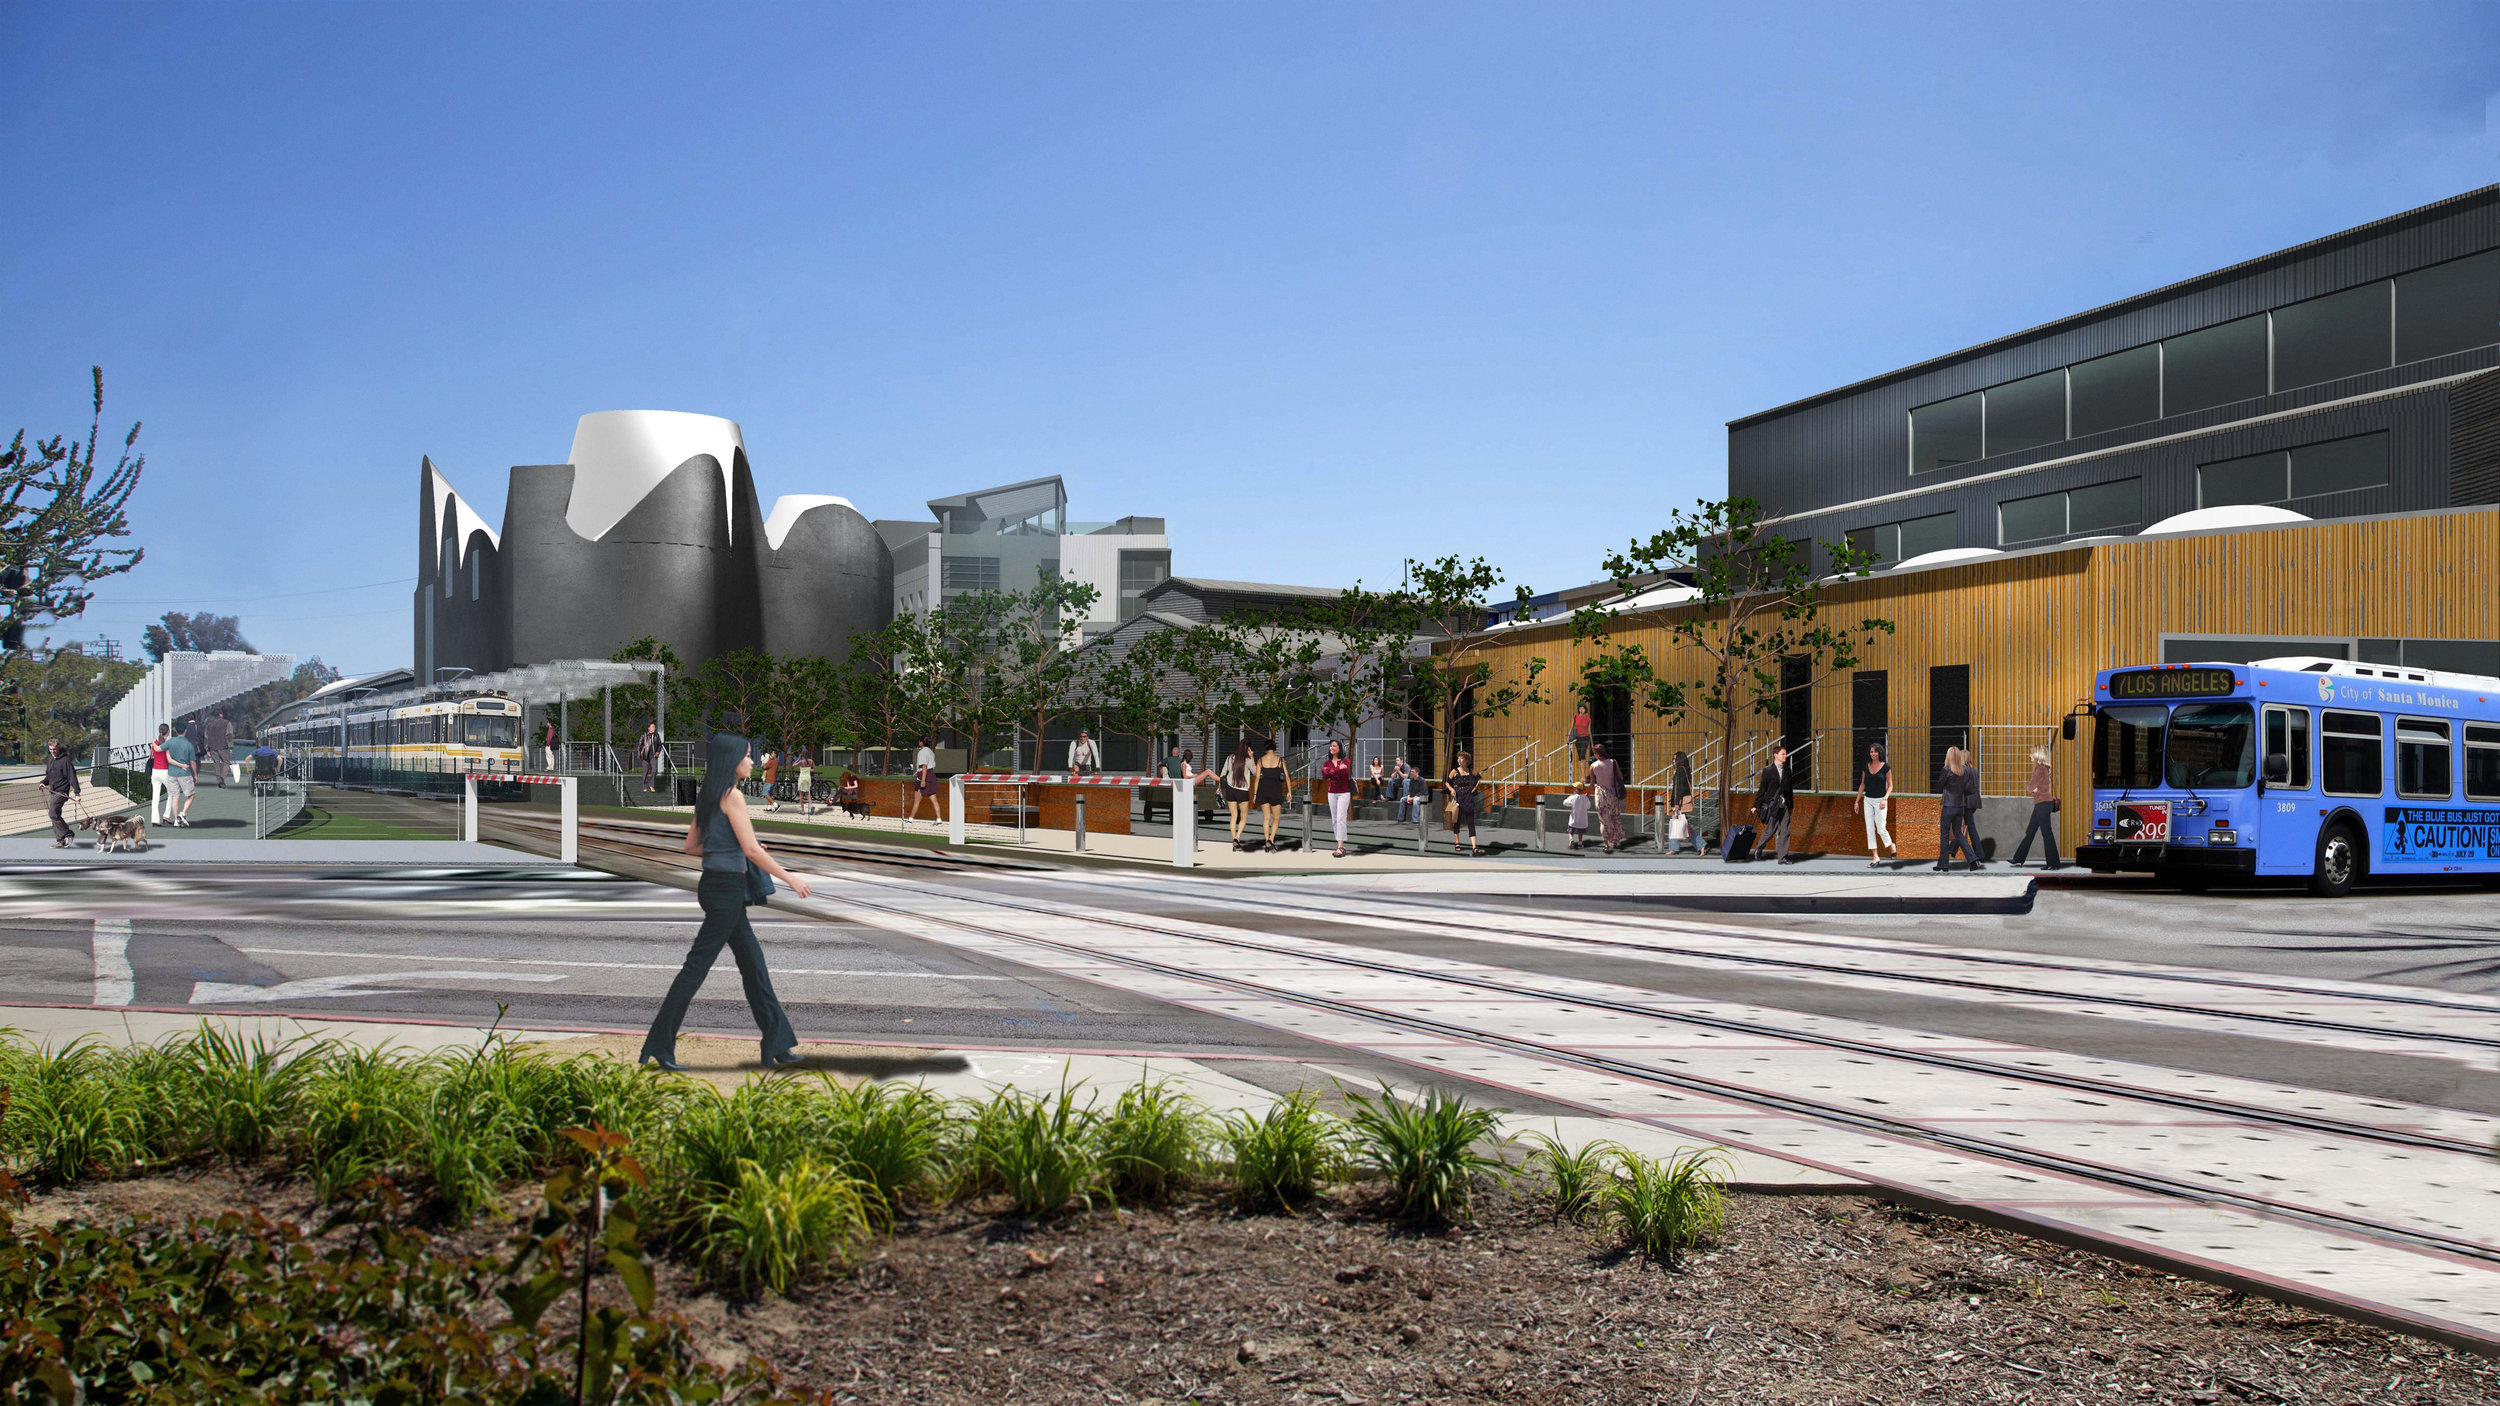 S.E.A.-Studio-Environmental-Architecture-David-Hertz-FAIA-Bergamot-Station-Santa-Monica-adaptive-reuse-sustainable-regenerative-restorative-design-pedestrian-walkable-urbanism-TOD-transit-oriented-development-community-mixed-use-creative-campus-13.jpg